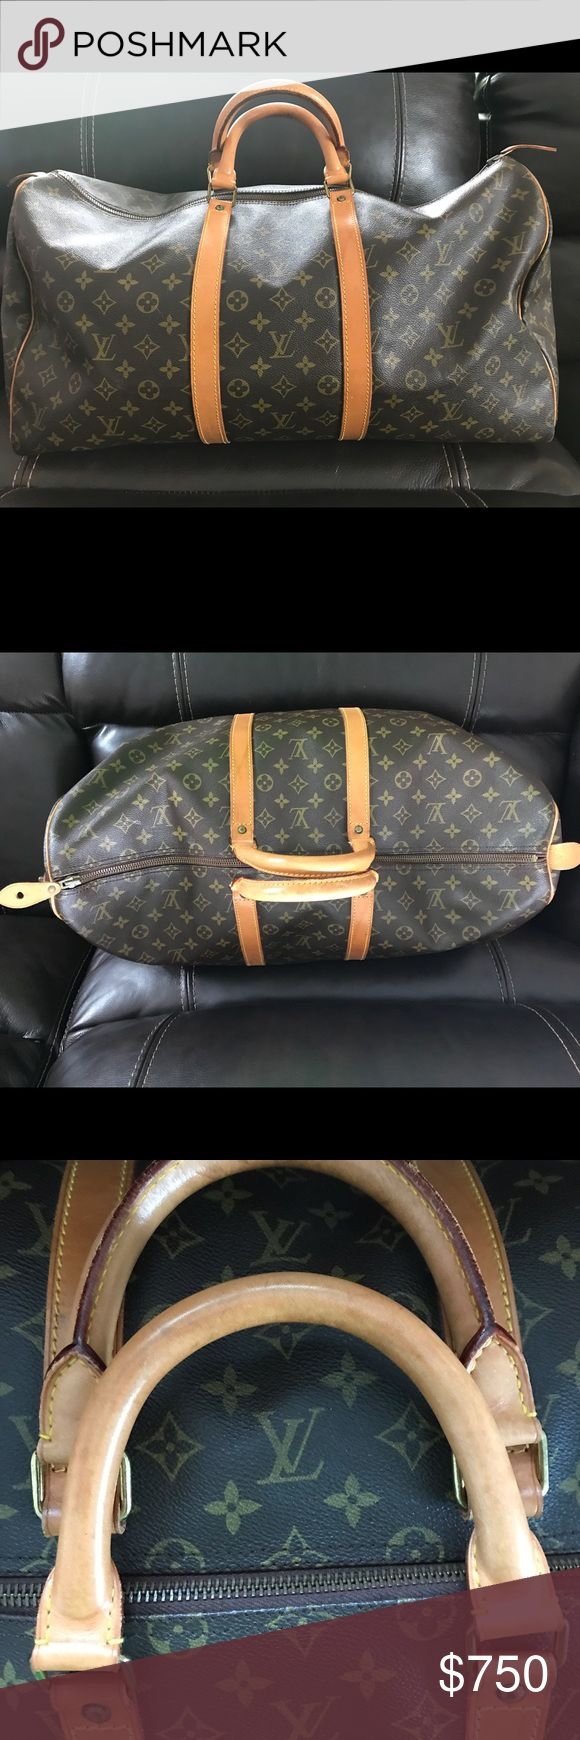 Louis Vuitton Keepall 55 Authentic preloved Keepall 55 - Bag is in very good use condition. Light scuffs on leather handle. Can be purchased through 🅿️🅿️ with free shipping. More photos or questions, please email dkangnavong @ gmail. Thanks for looking! Louis Vuitton Bags Travel Bags